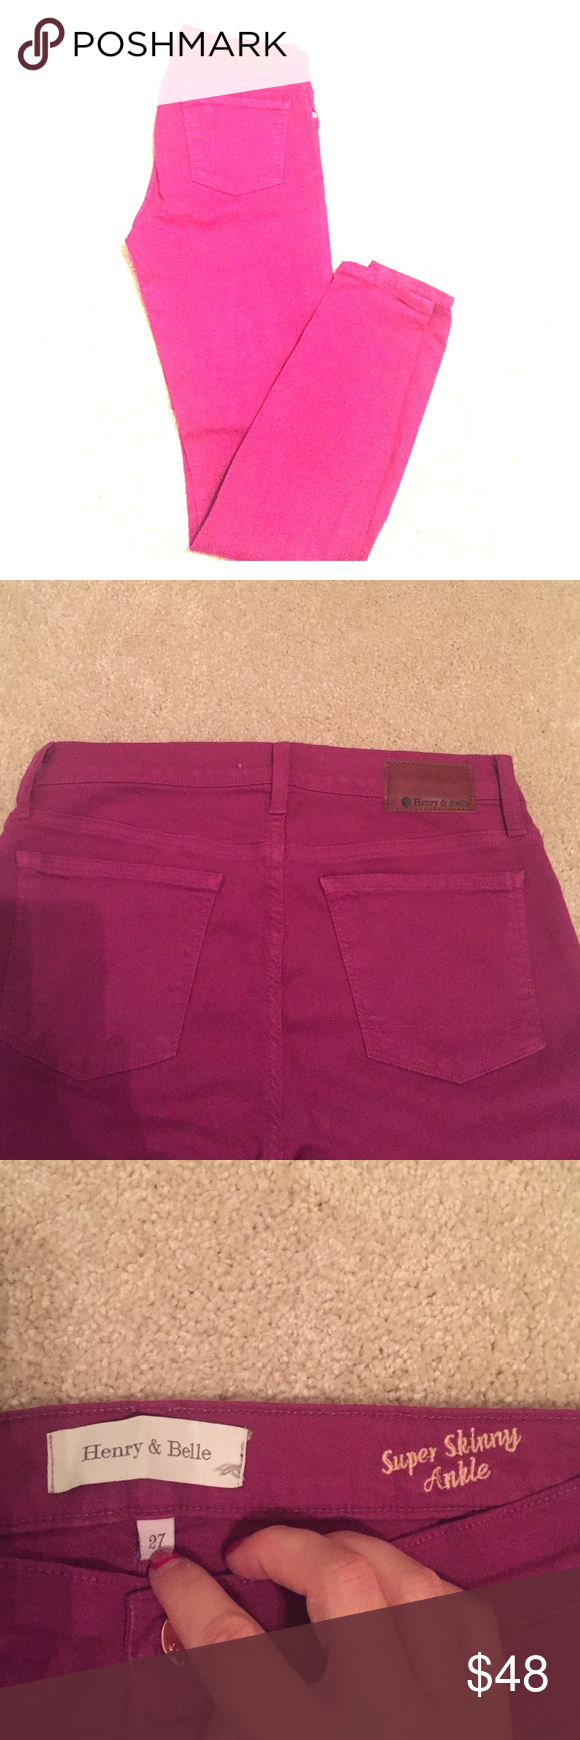 Henry and Belle super skinny ankle Hardly worn Henry and Belle denim. Size 27. Wine color. Super skinny ankle. Awesome fit. Run true to size Henry and Belle Jeans Skinny